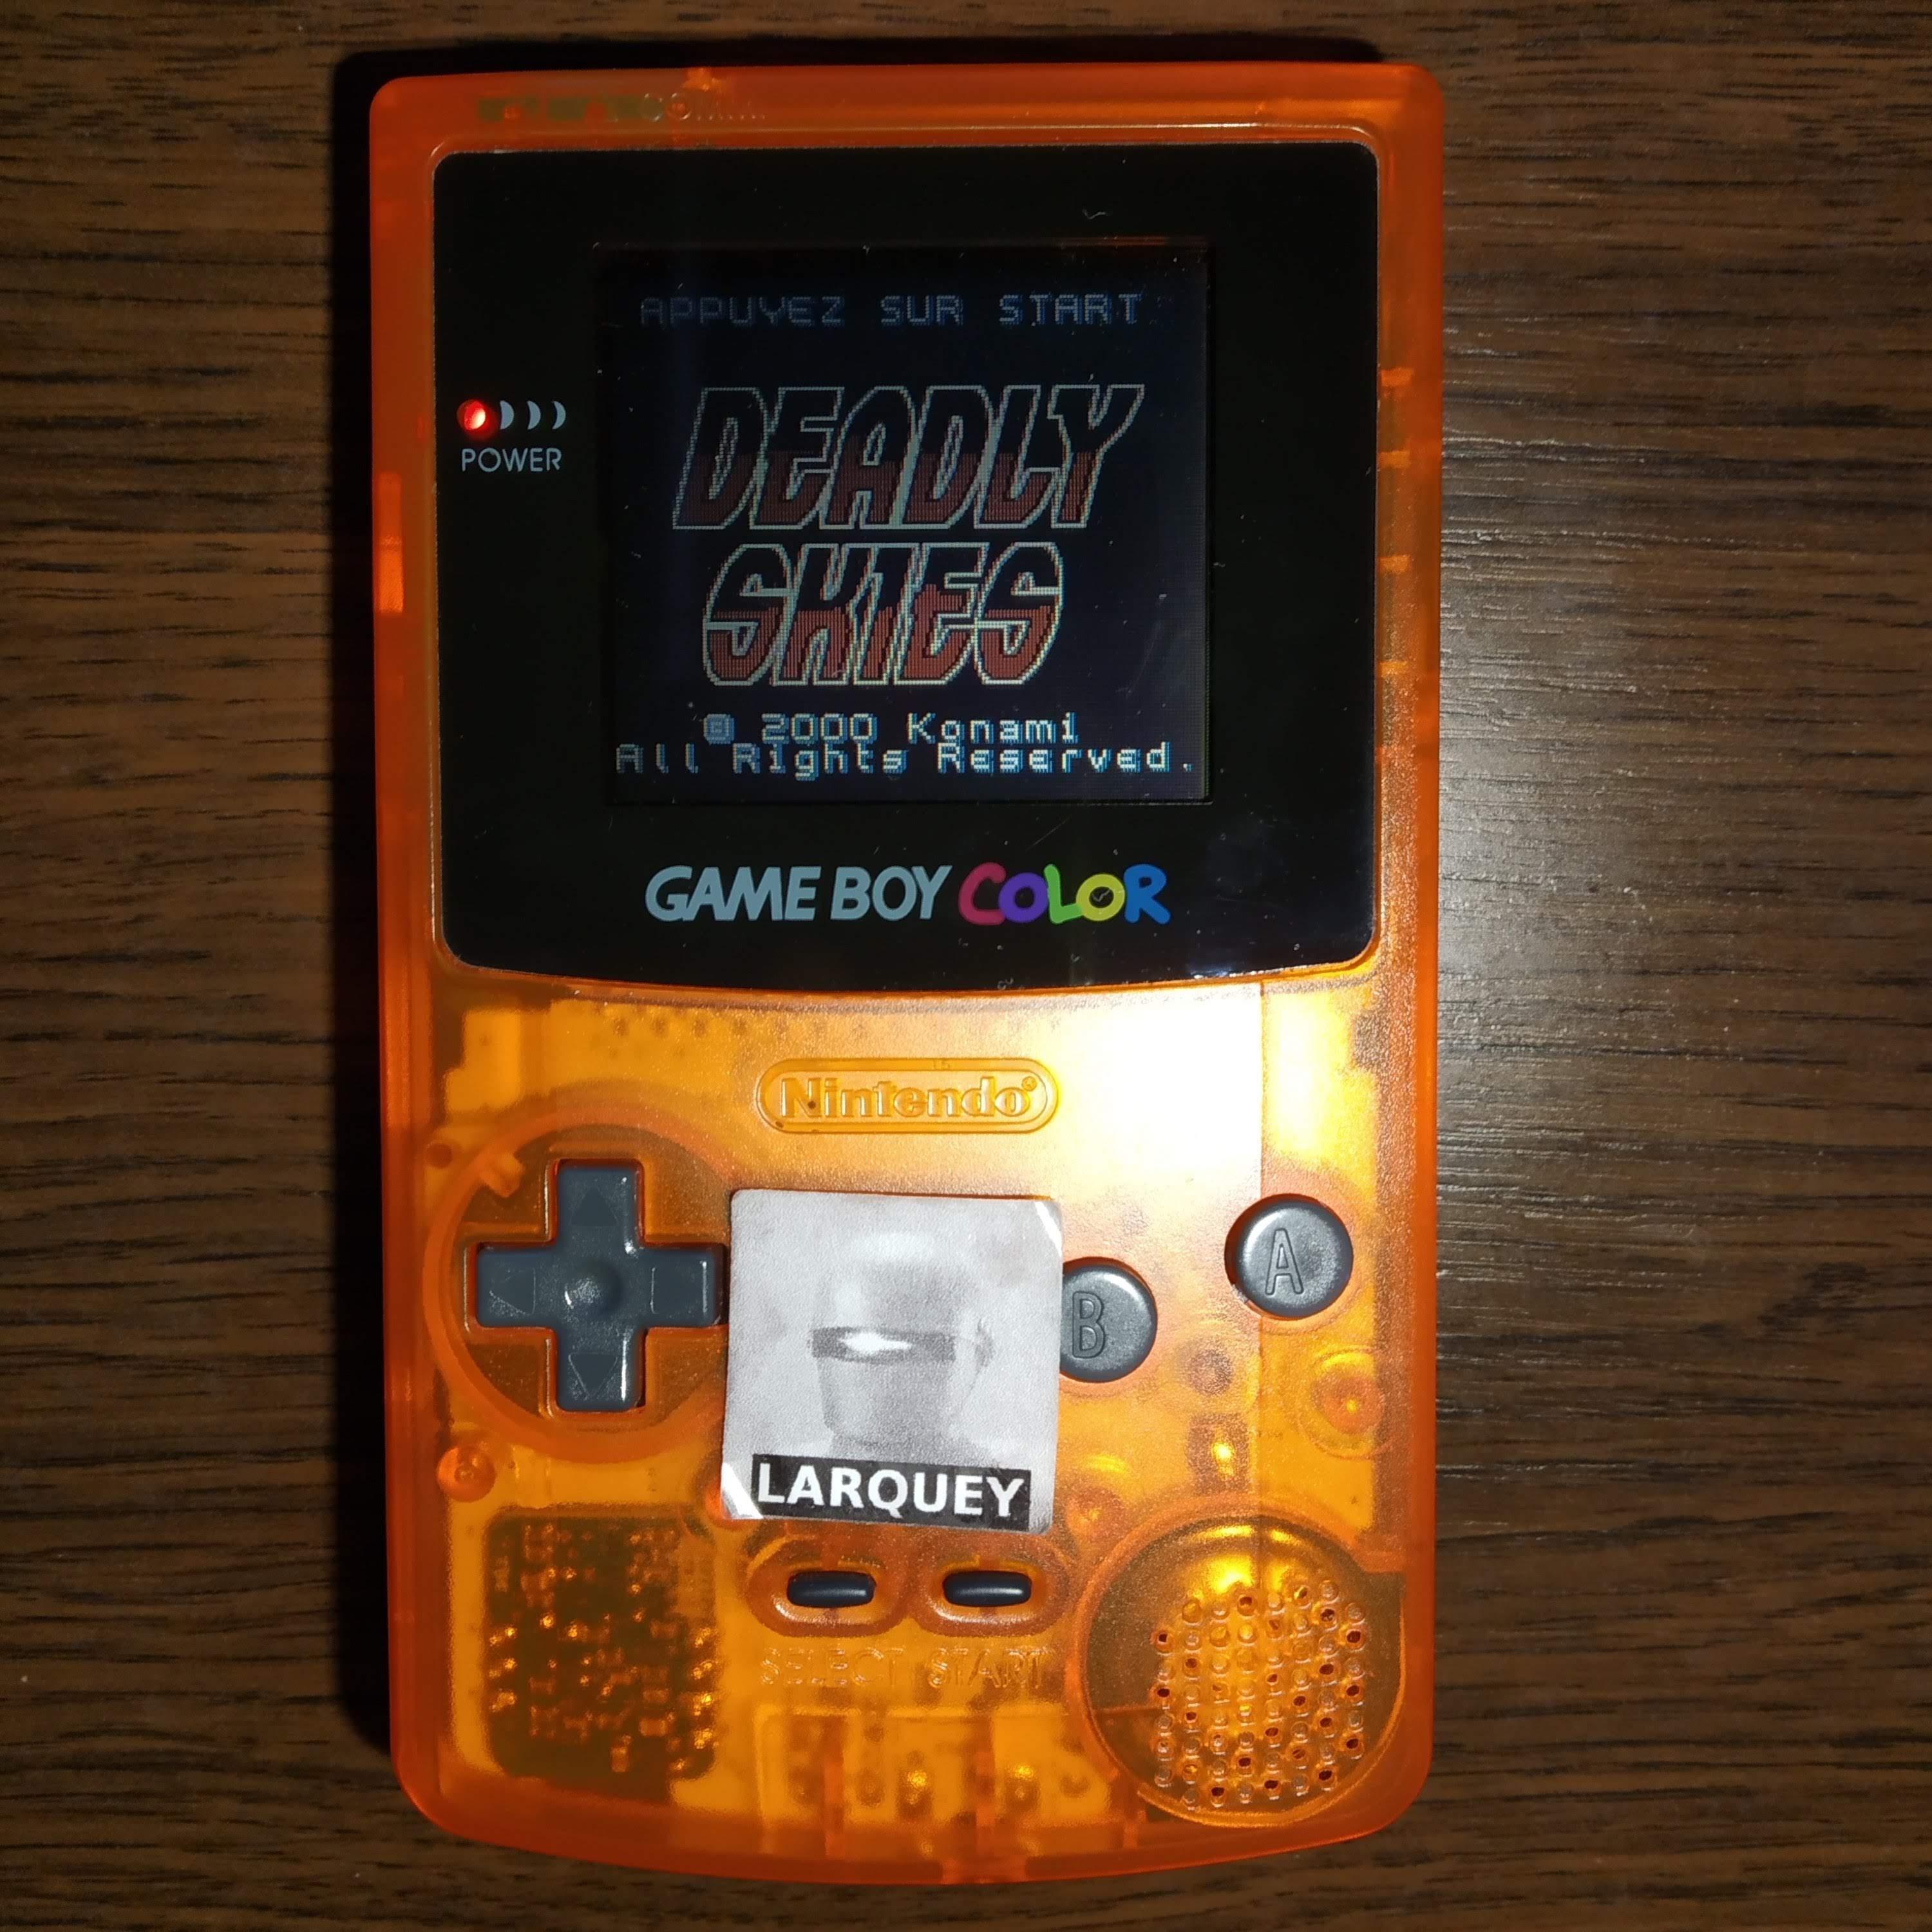 Larquey: AirForce Delta [Normal] (Game Boy Color) 14,200 points on 2020-07-23 11:43:11